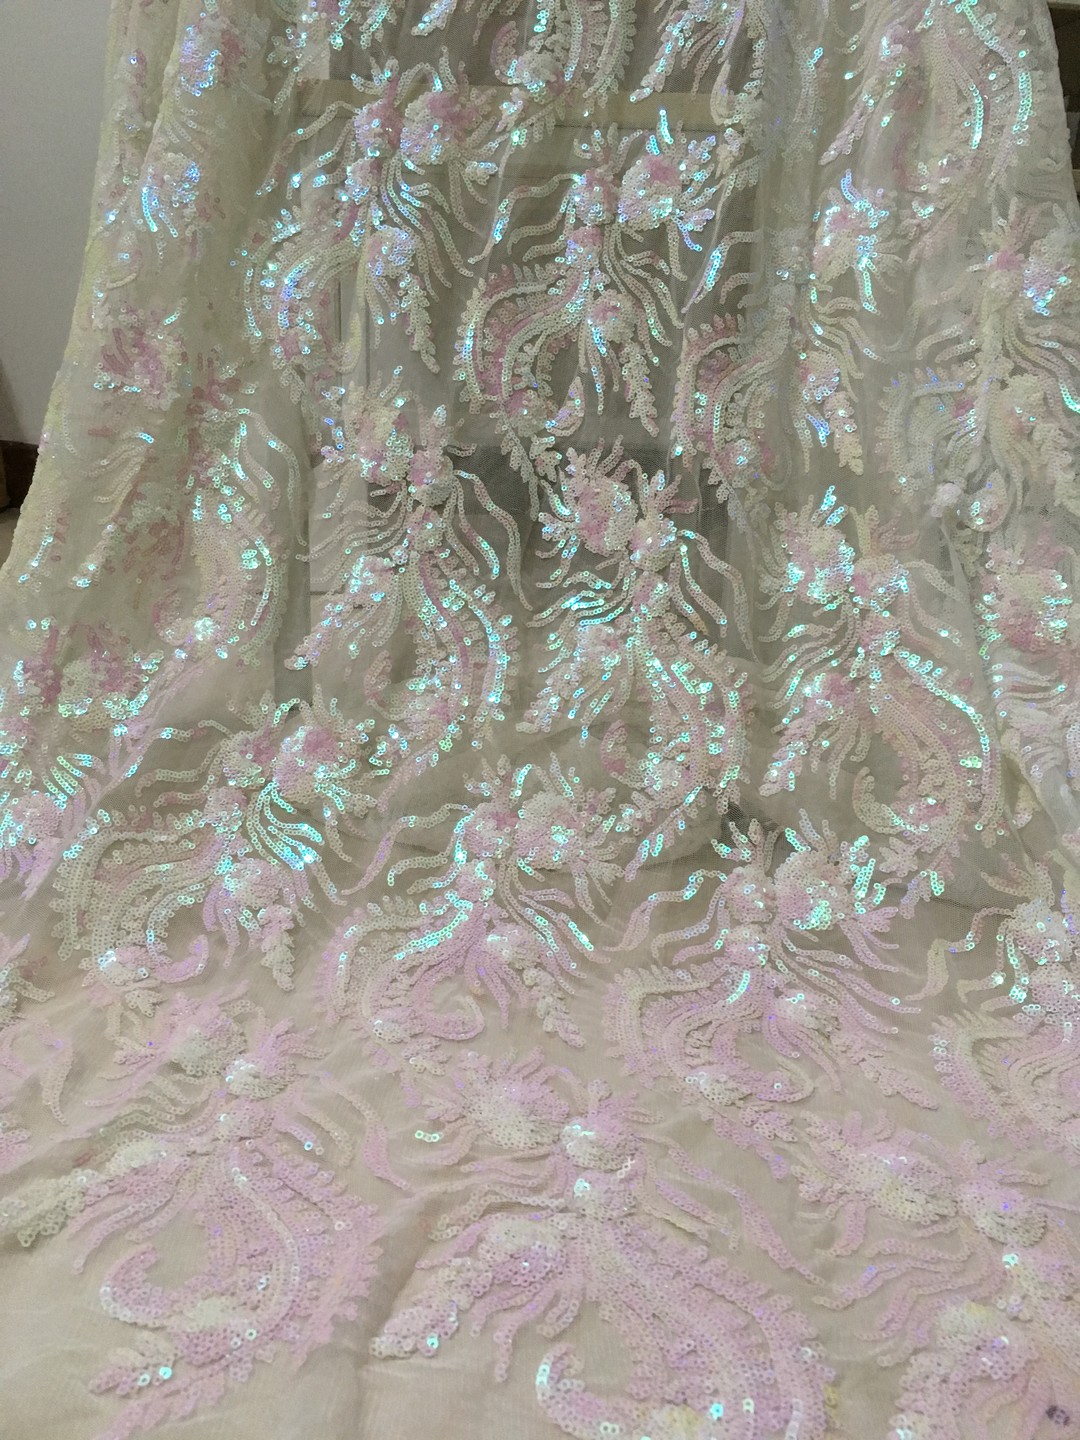 Newest Arriver Beautiful Dragon African Sequin Lace Fabric, Sequins Nobleness African Lace Fabric Shining for Party Dresses K008